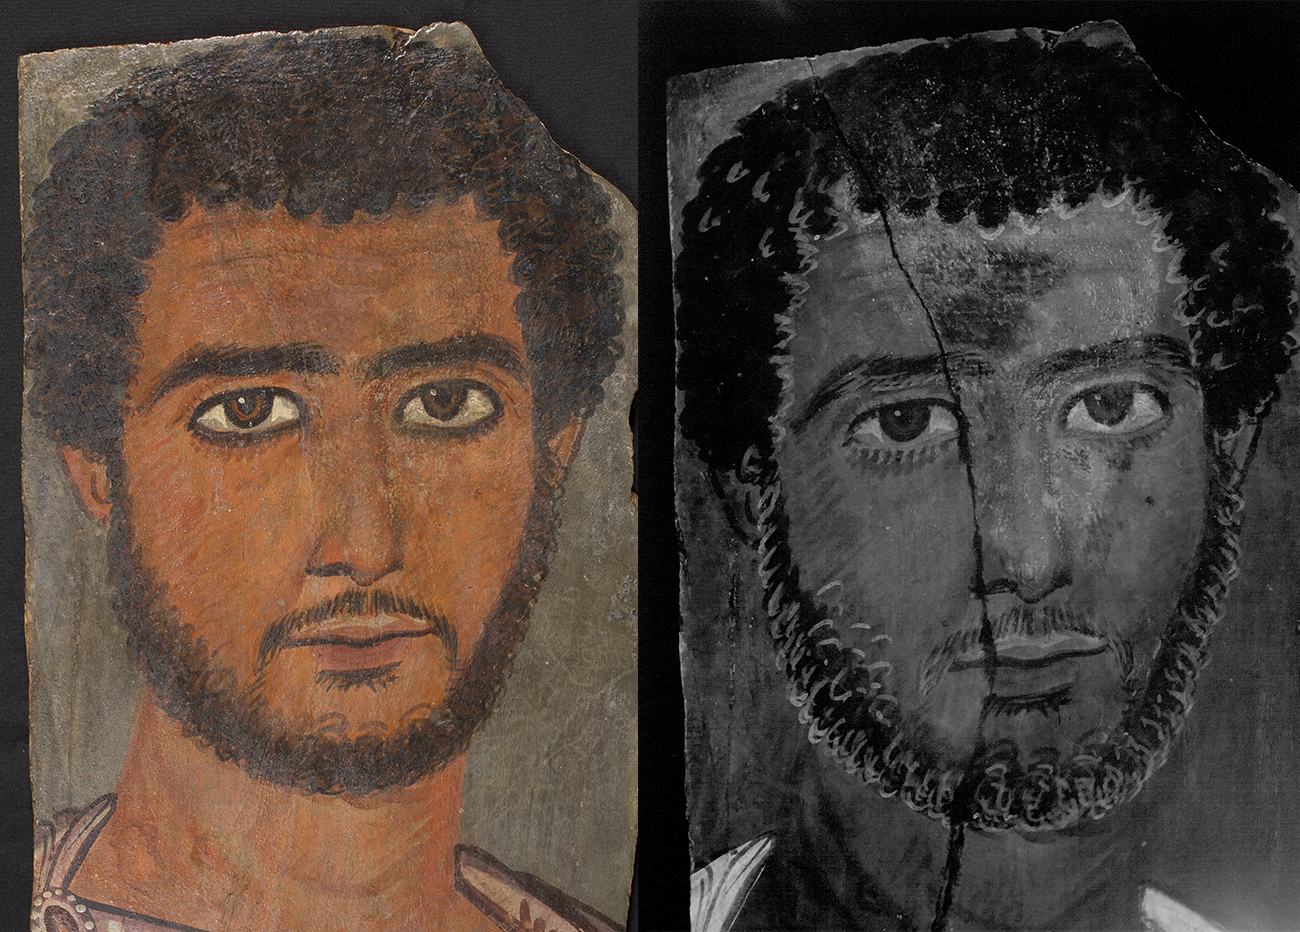 Side-by-side comparison of a funerary portrait of a man shot in two lights revealing invisible brushstrokes in his beard and hair.